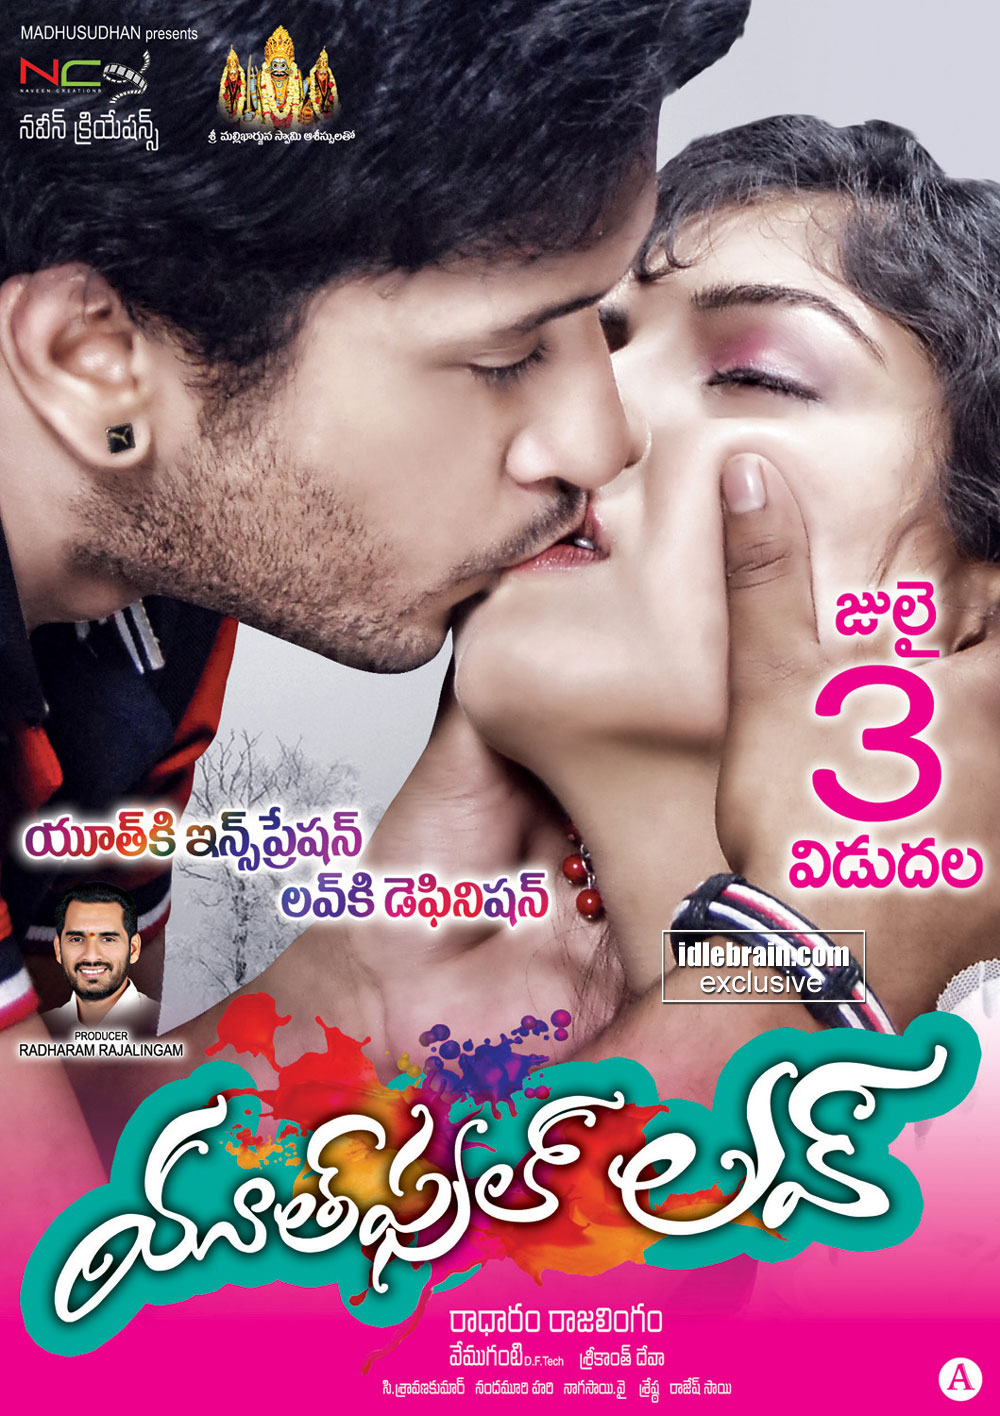 Telugu New Hot Movie Youthful Love Posters